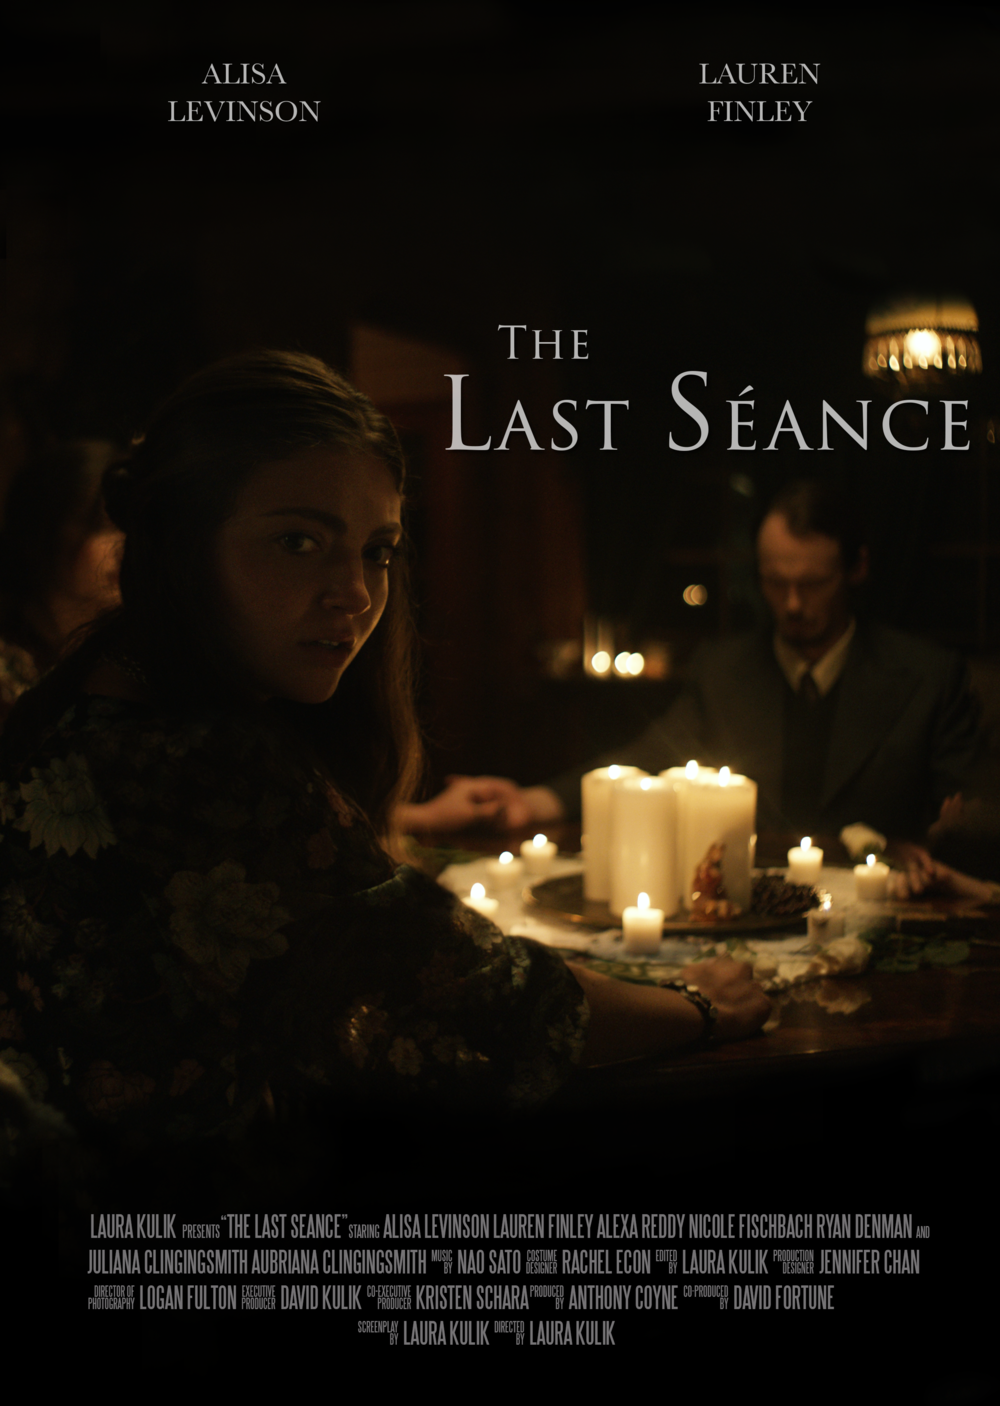 the_last_seance_001_lowres.png